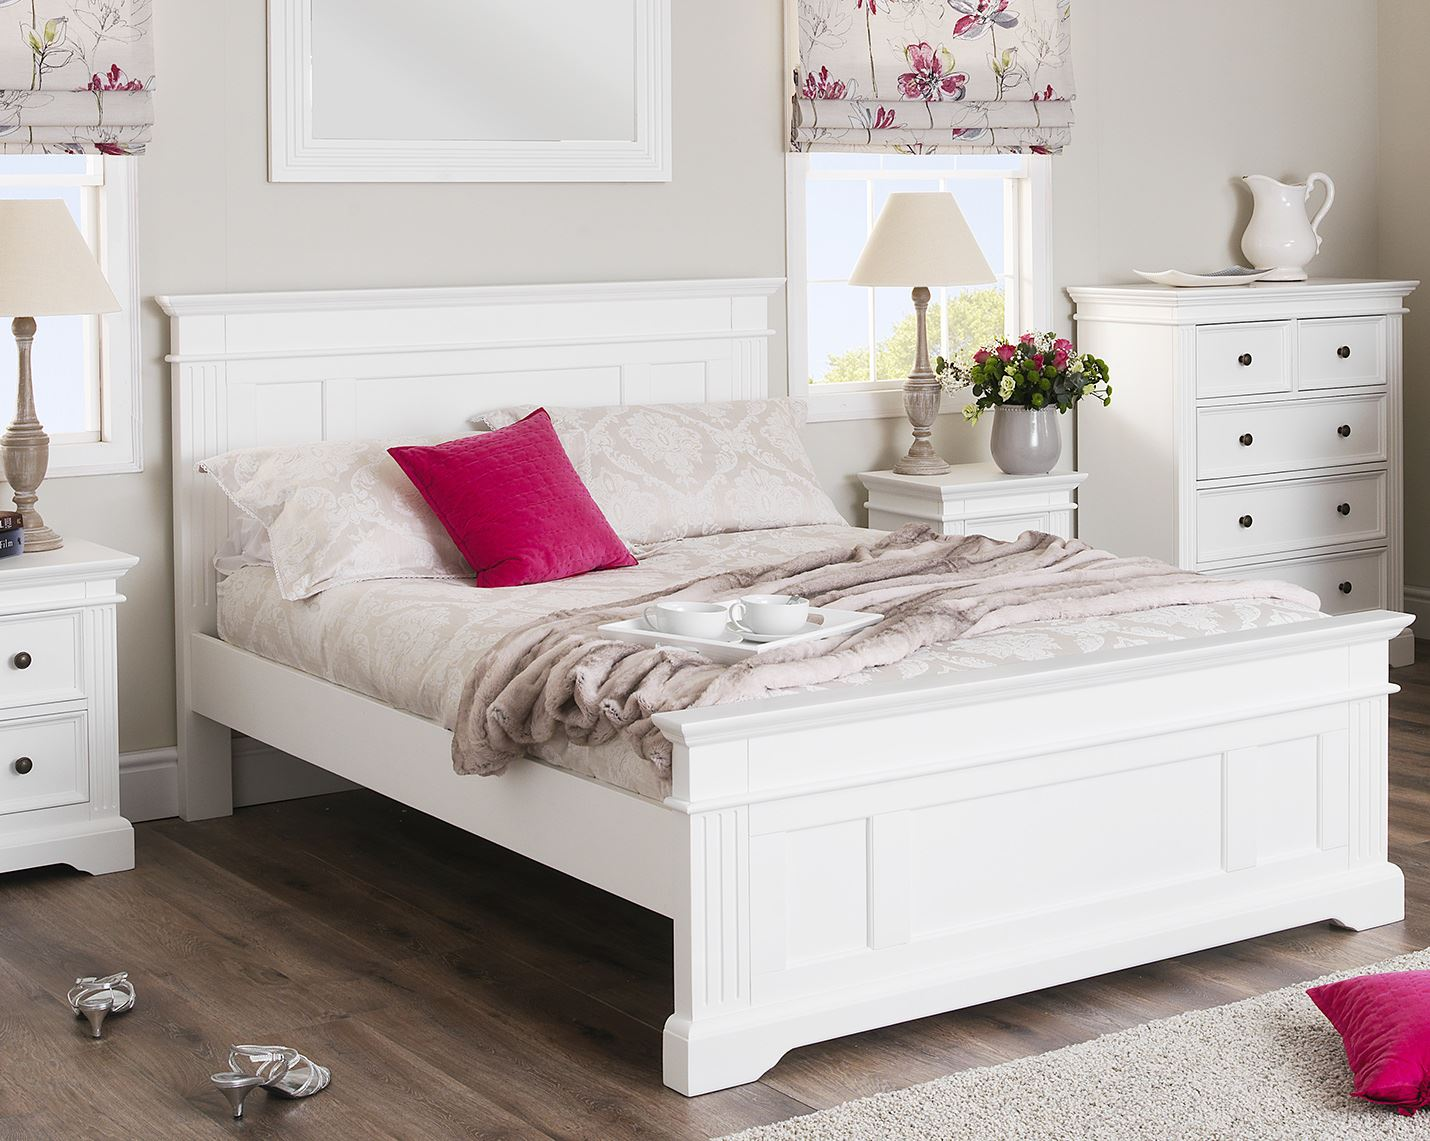 Bed furniture with drawers - Gainsborough White Bedroom Furniture Bedside Cabinets Chest Of Drawers Wardrobe Ebay